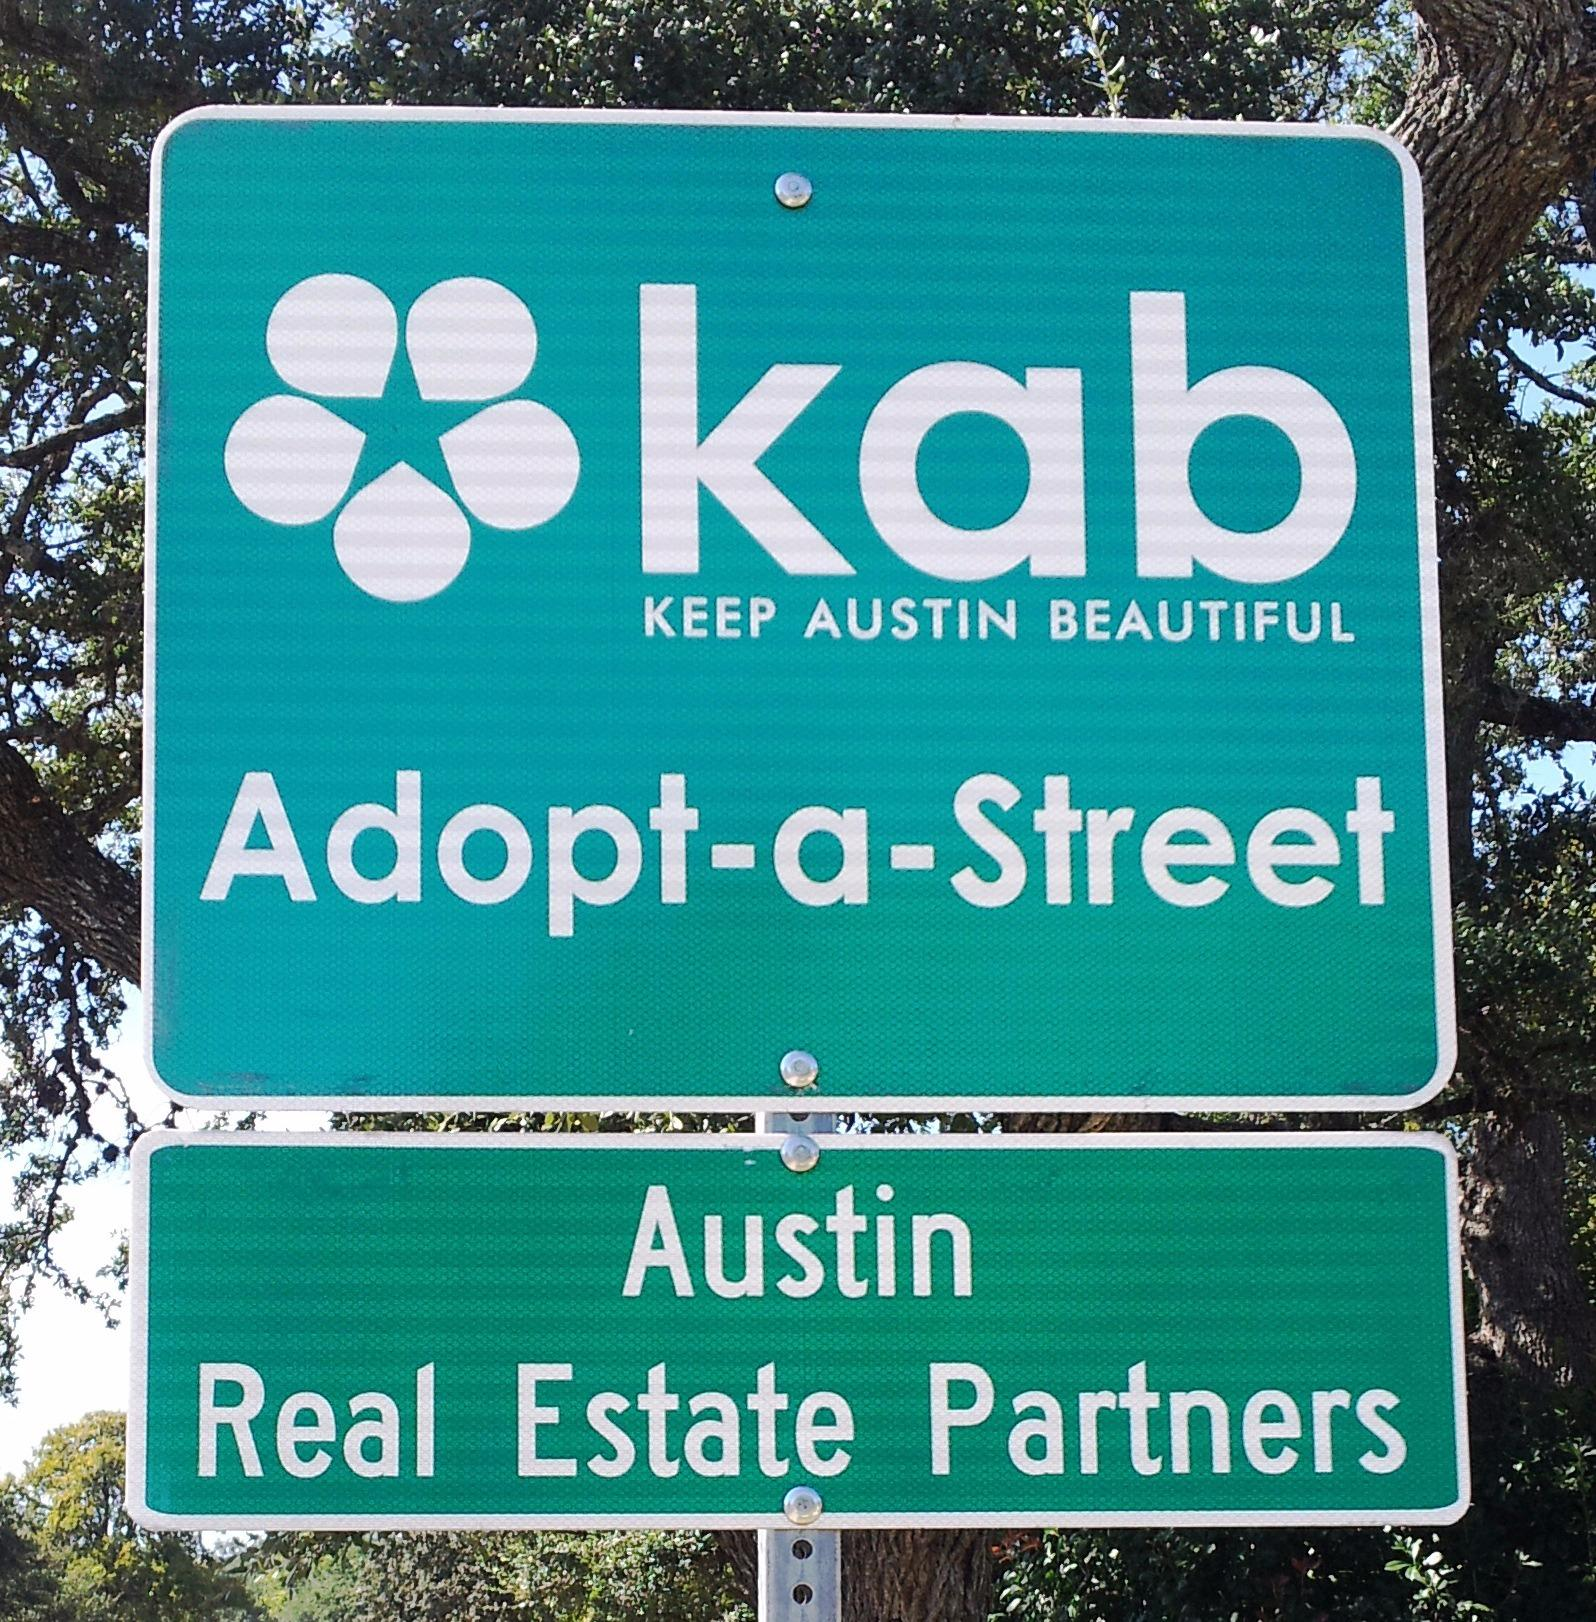 Austin Real Estate Partners image 4